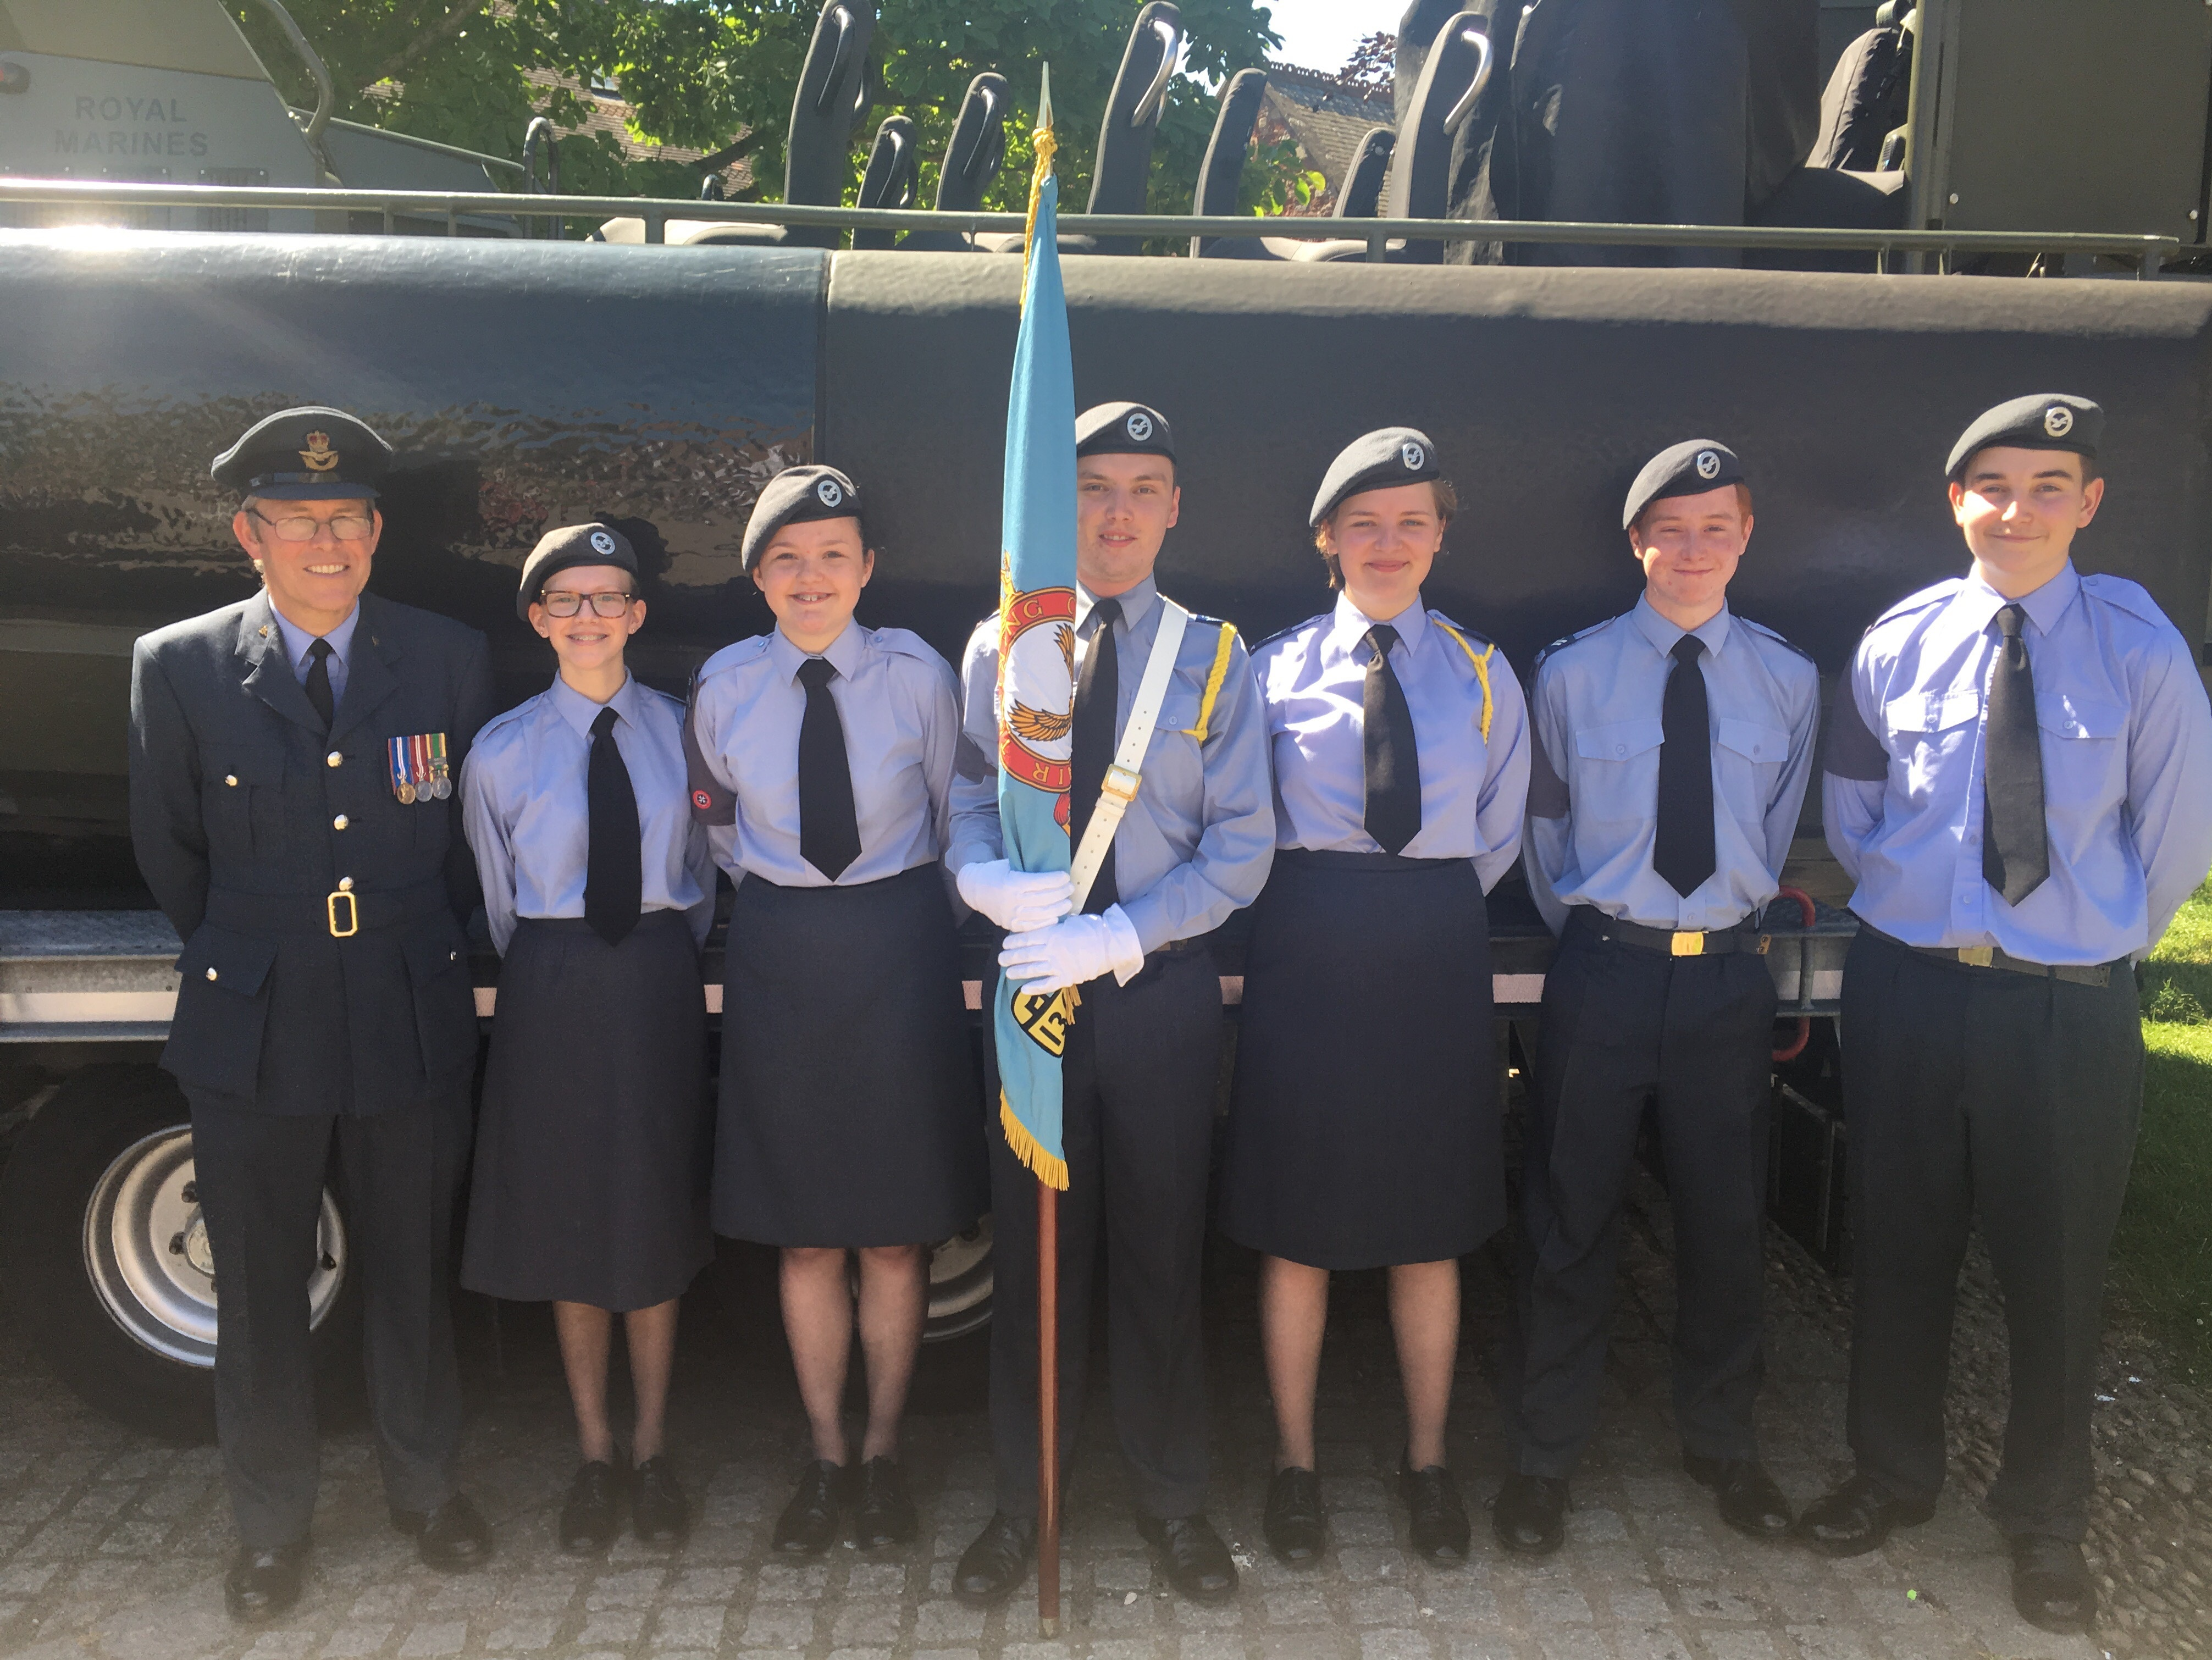 Exeter Armed Forces Day